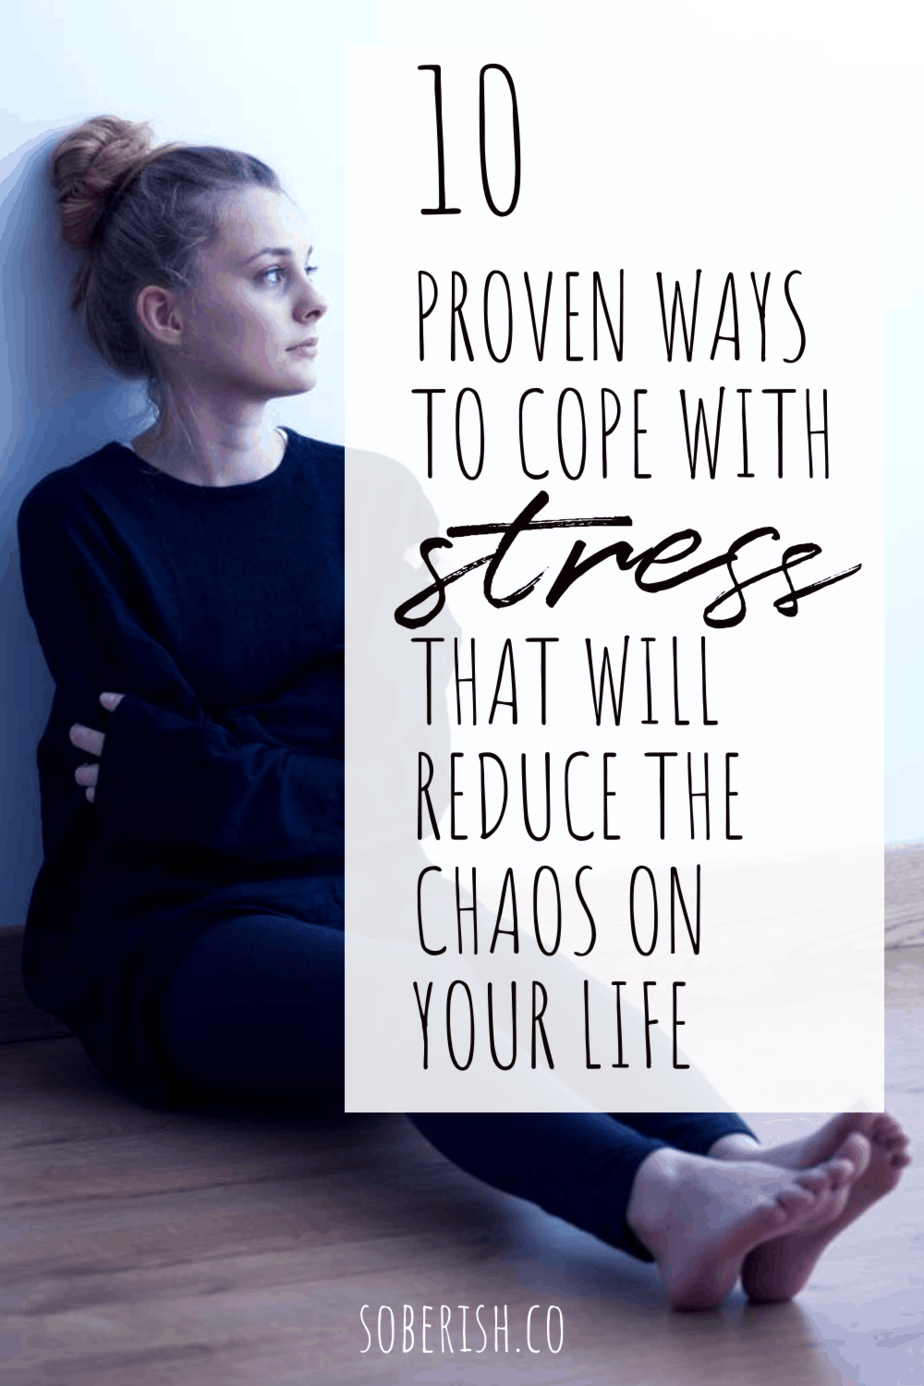 woman sits against wall with title 10 proven ways to cope with stress